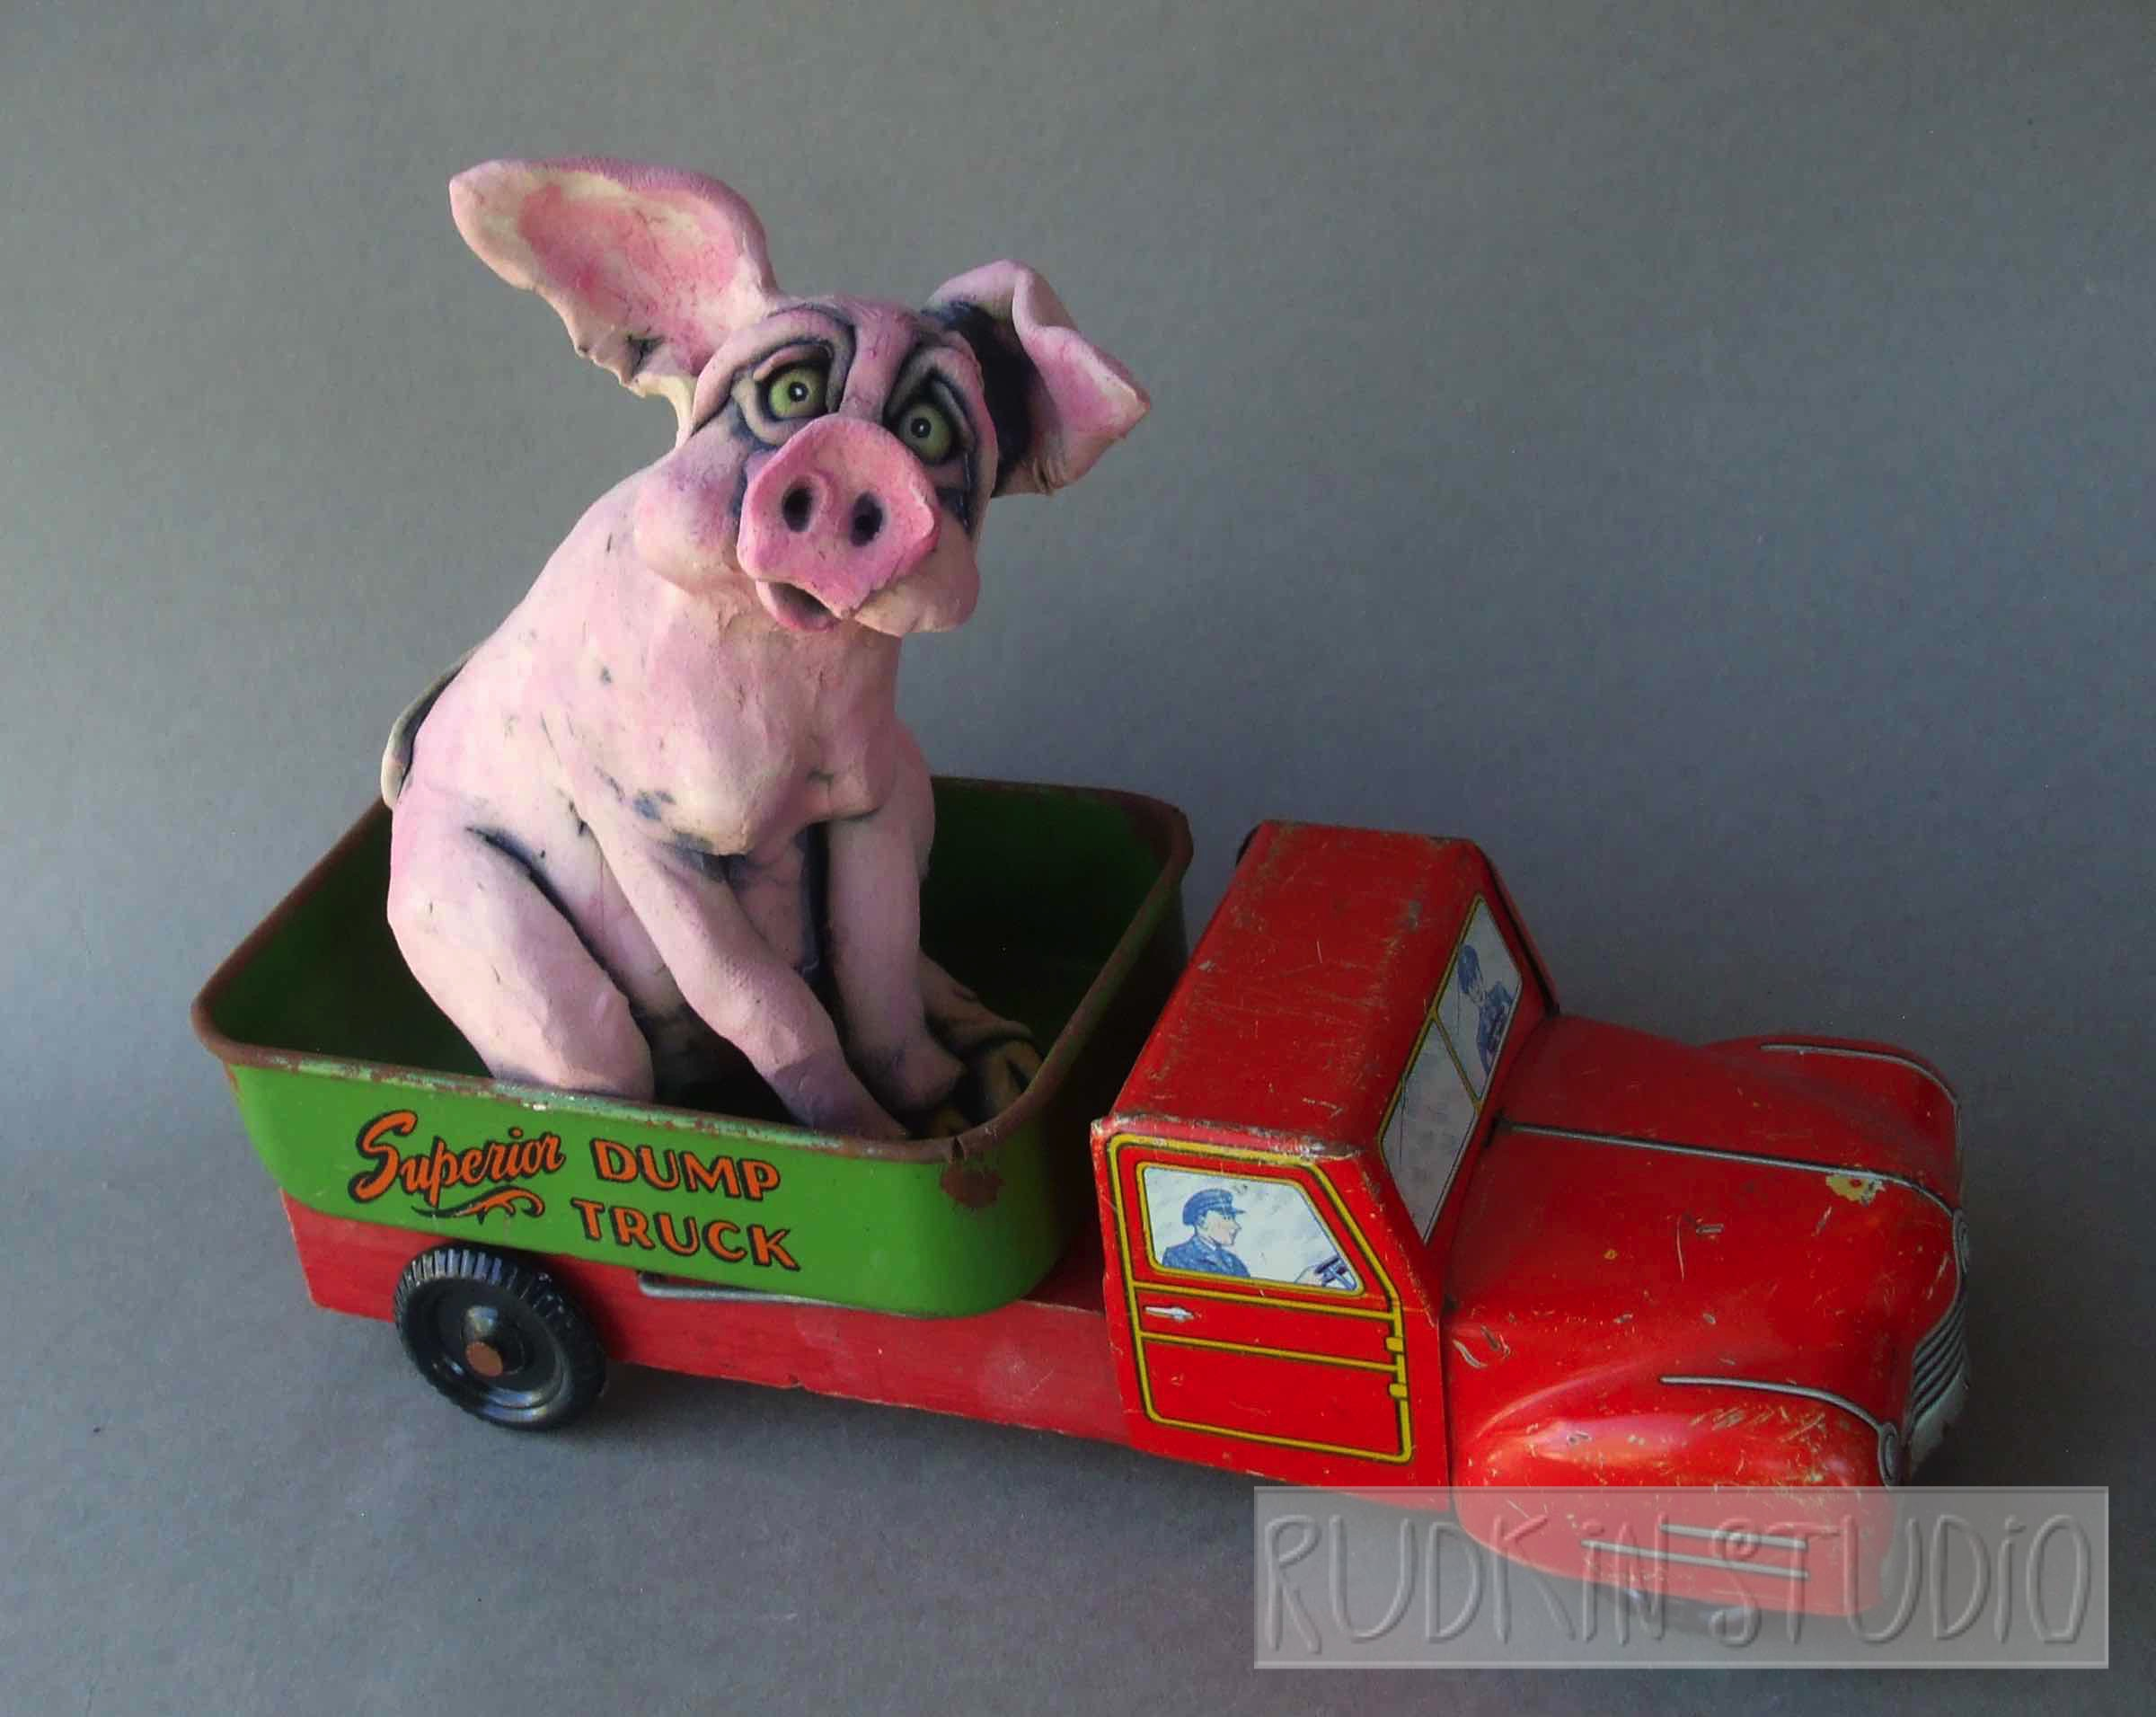 Pink Pig In Dump Truck Sculpture Joy Ride Rudkin Studio